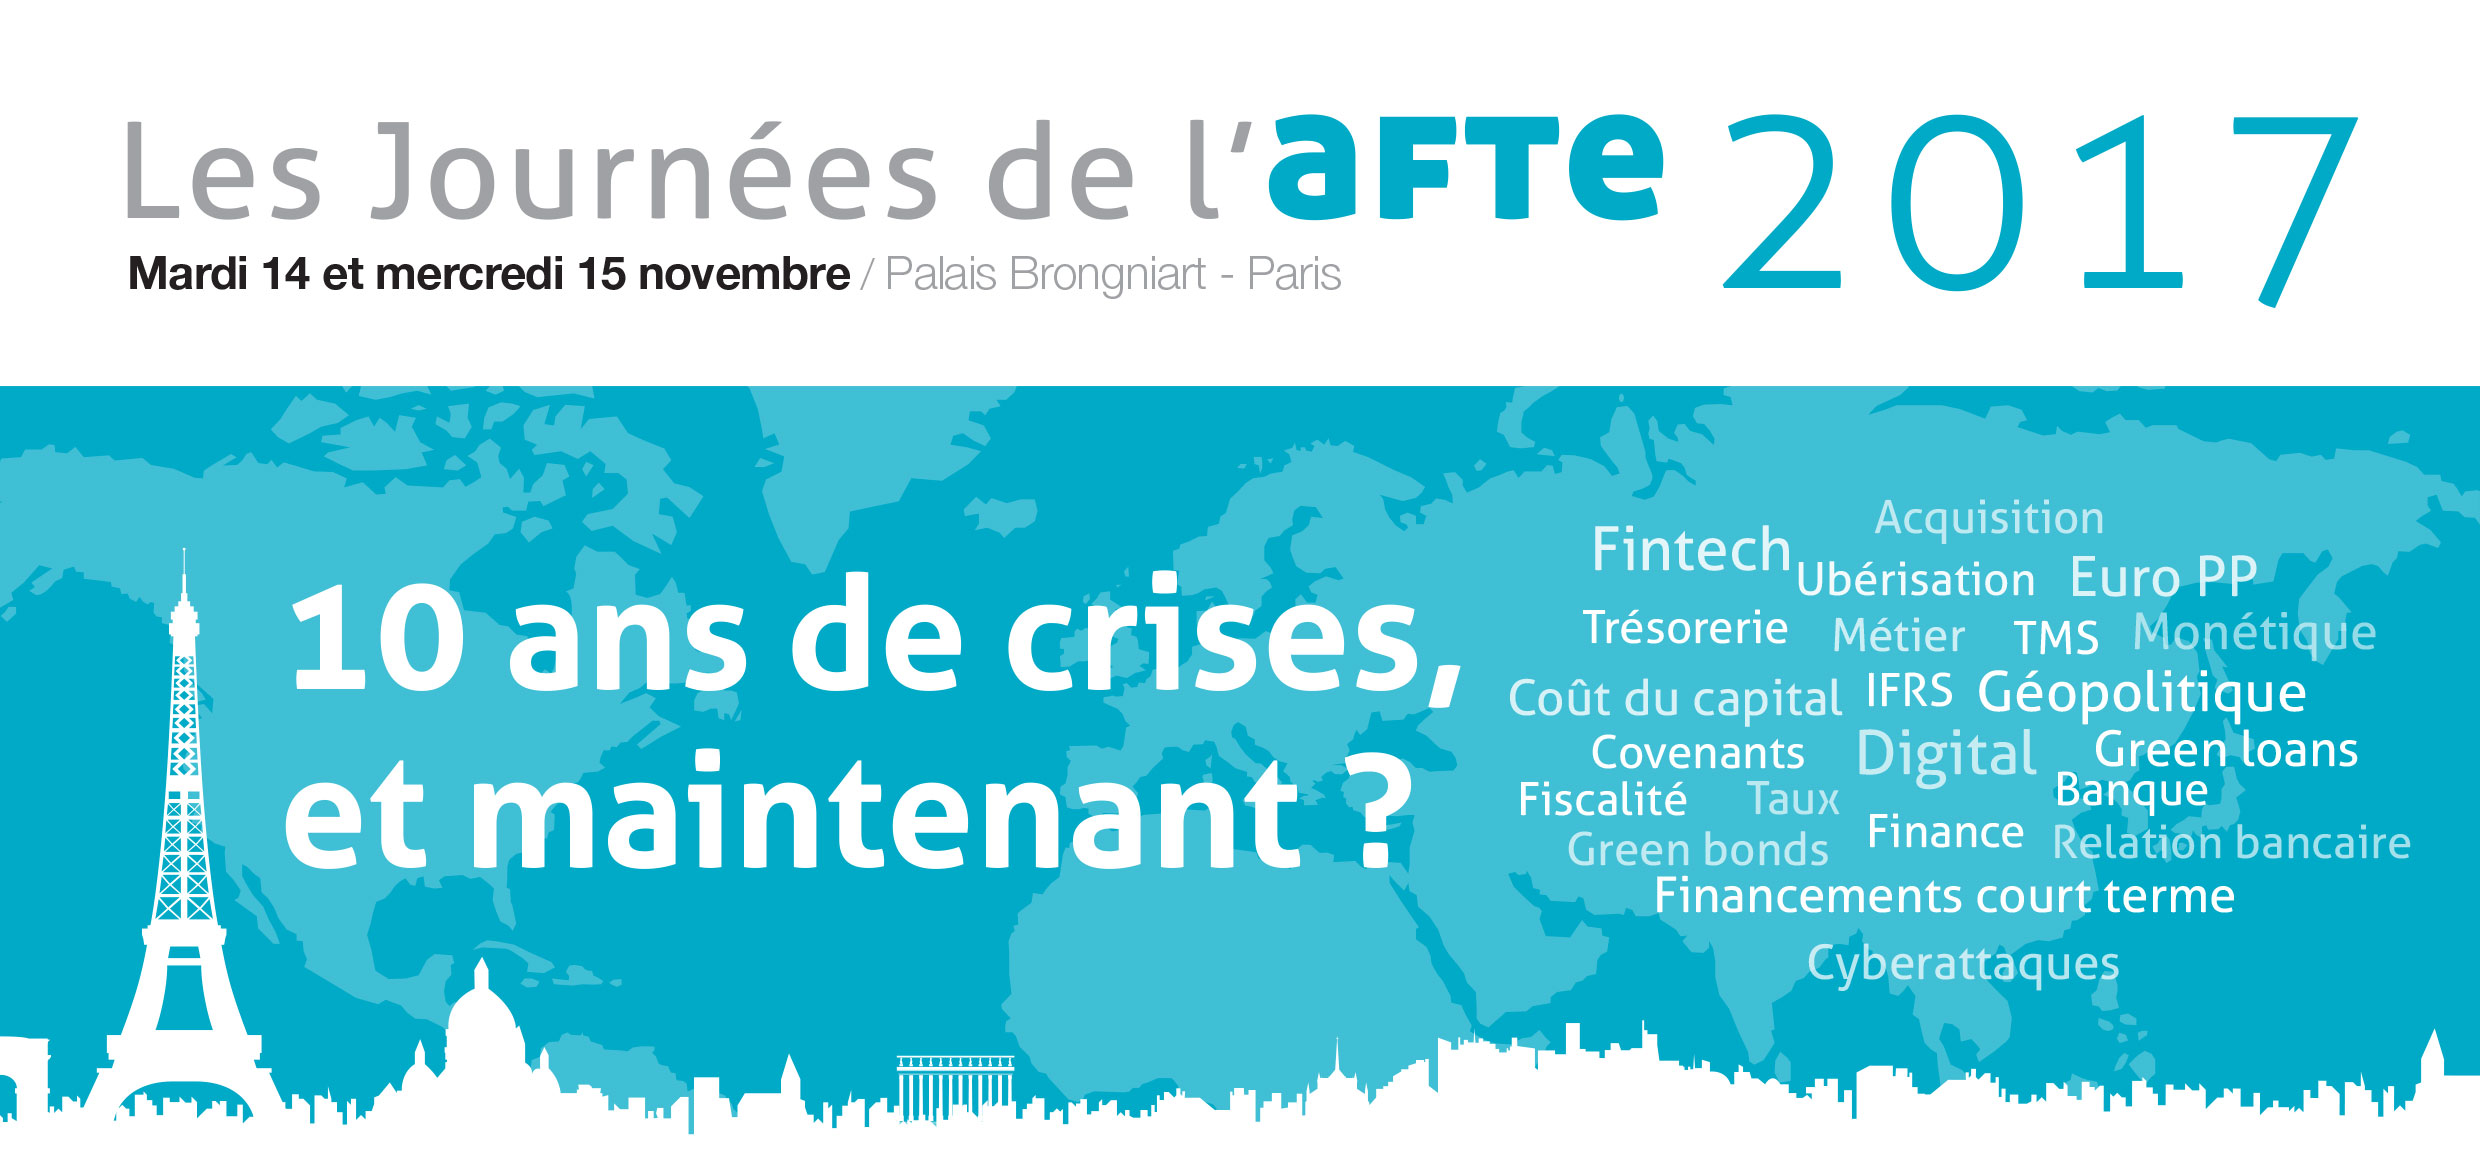 AFTE 2017